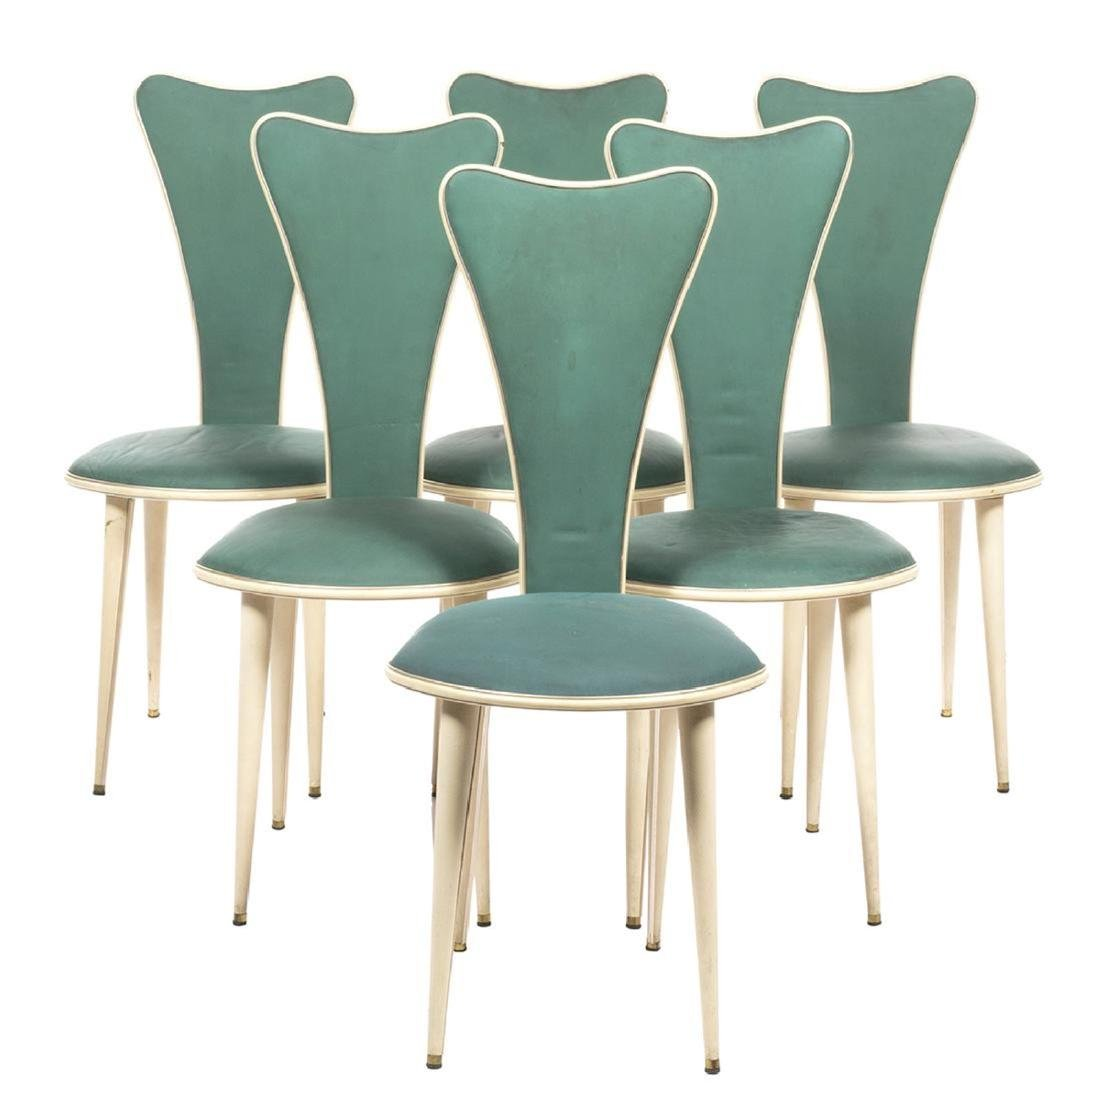 Umberto Mascagni Dining Chairs